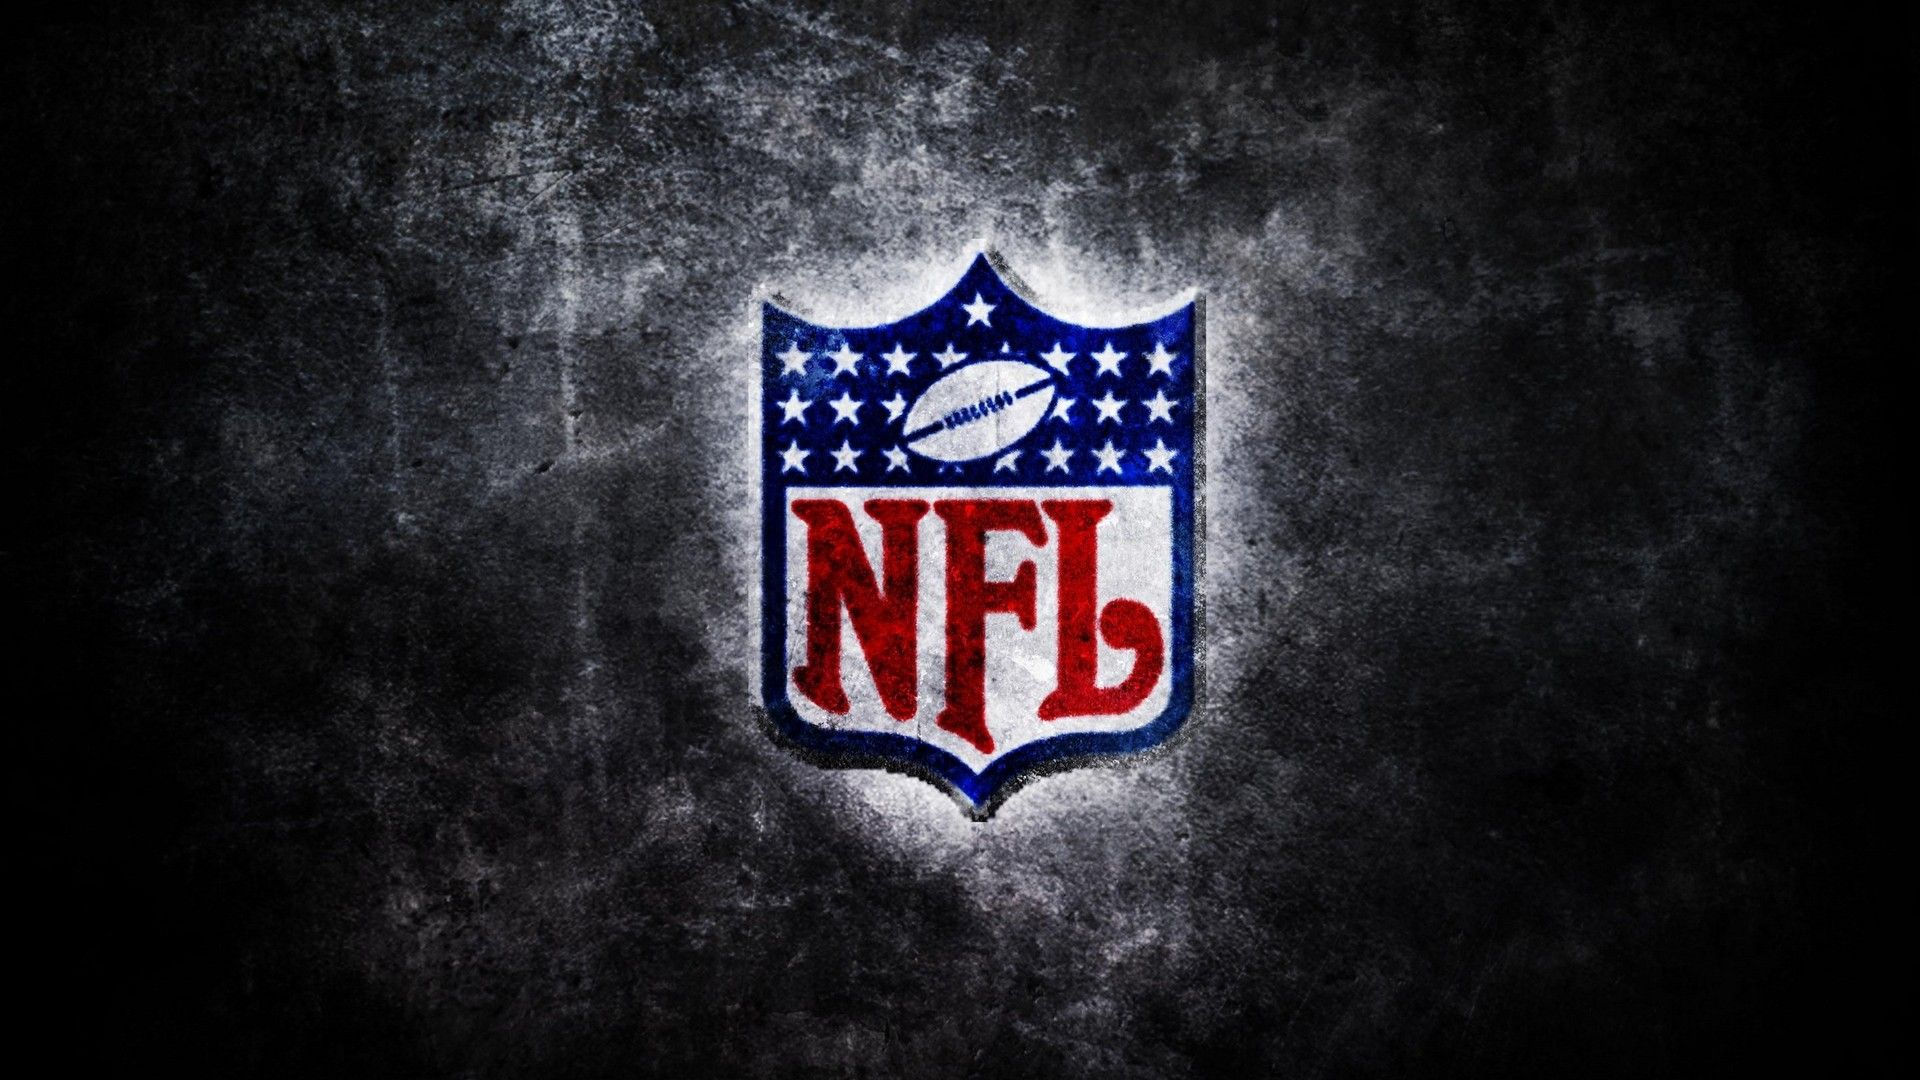 HD Cool NFL Backgrounds Football wallpaper, Nfl logo